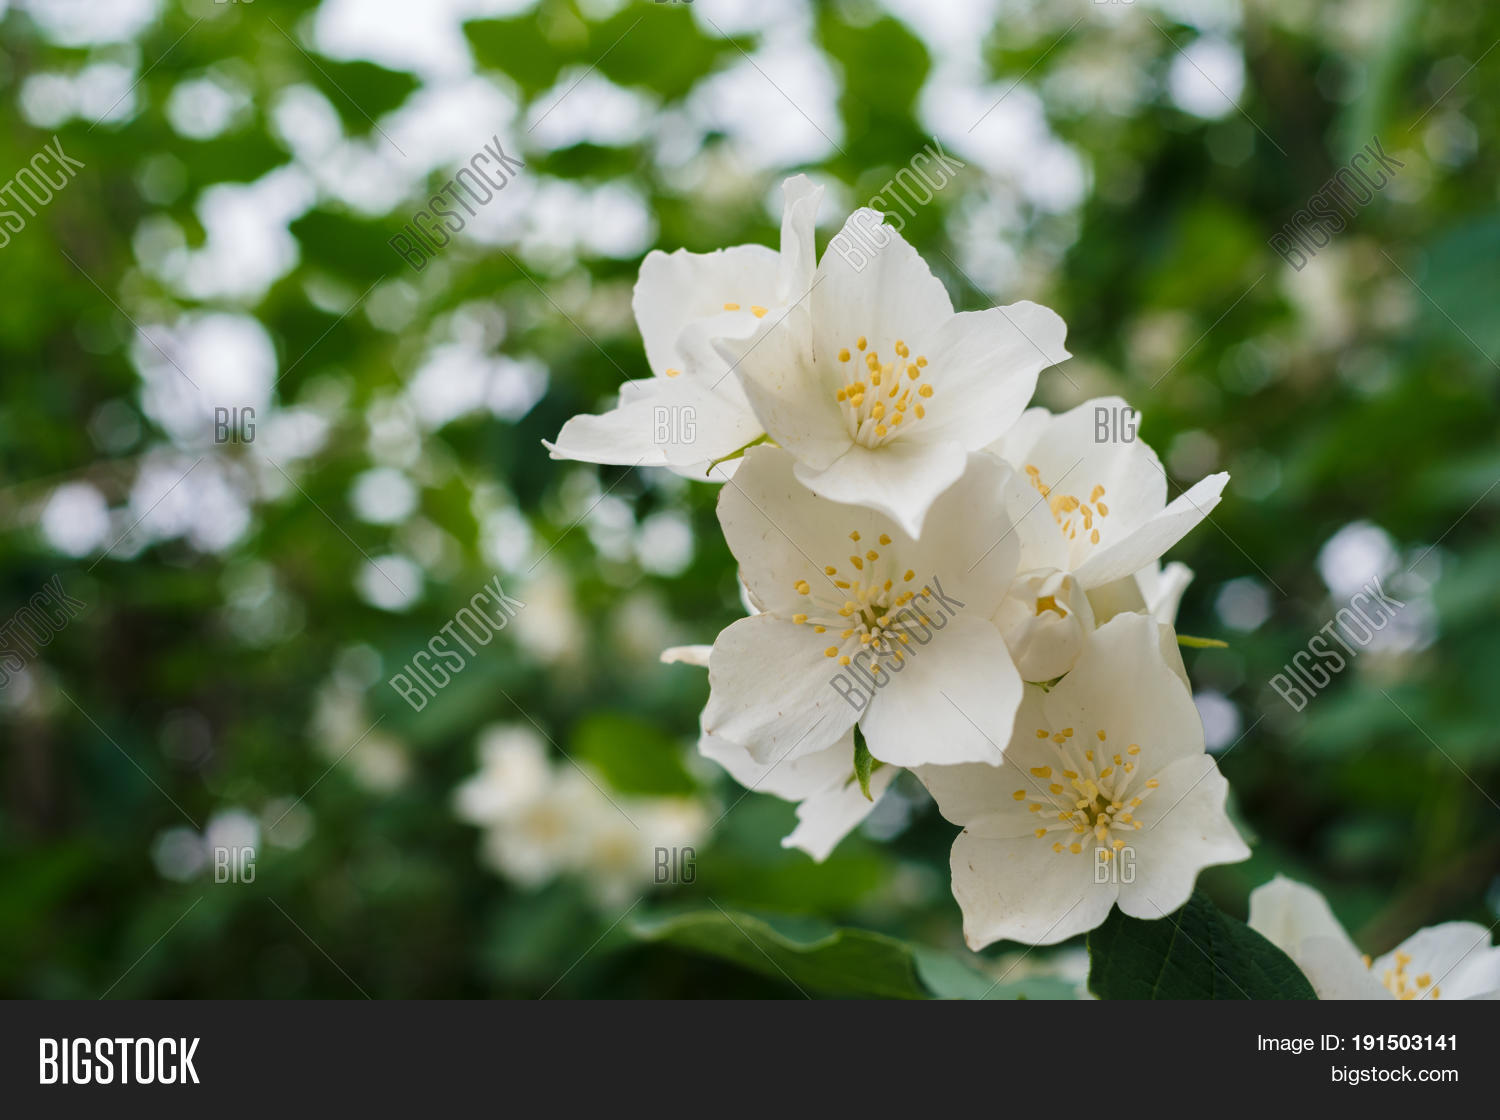 Jasmine white flowers image photo free trial bigstock jasmine white flowers and green leaves on bush in full blossom at summer park floral background izmirmasajfo